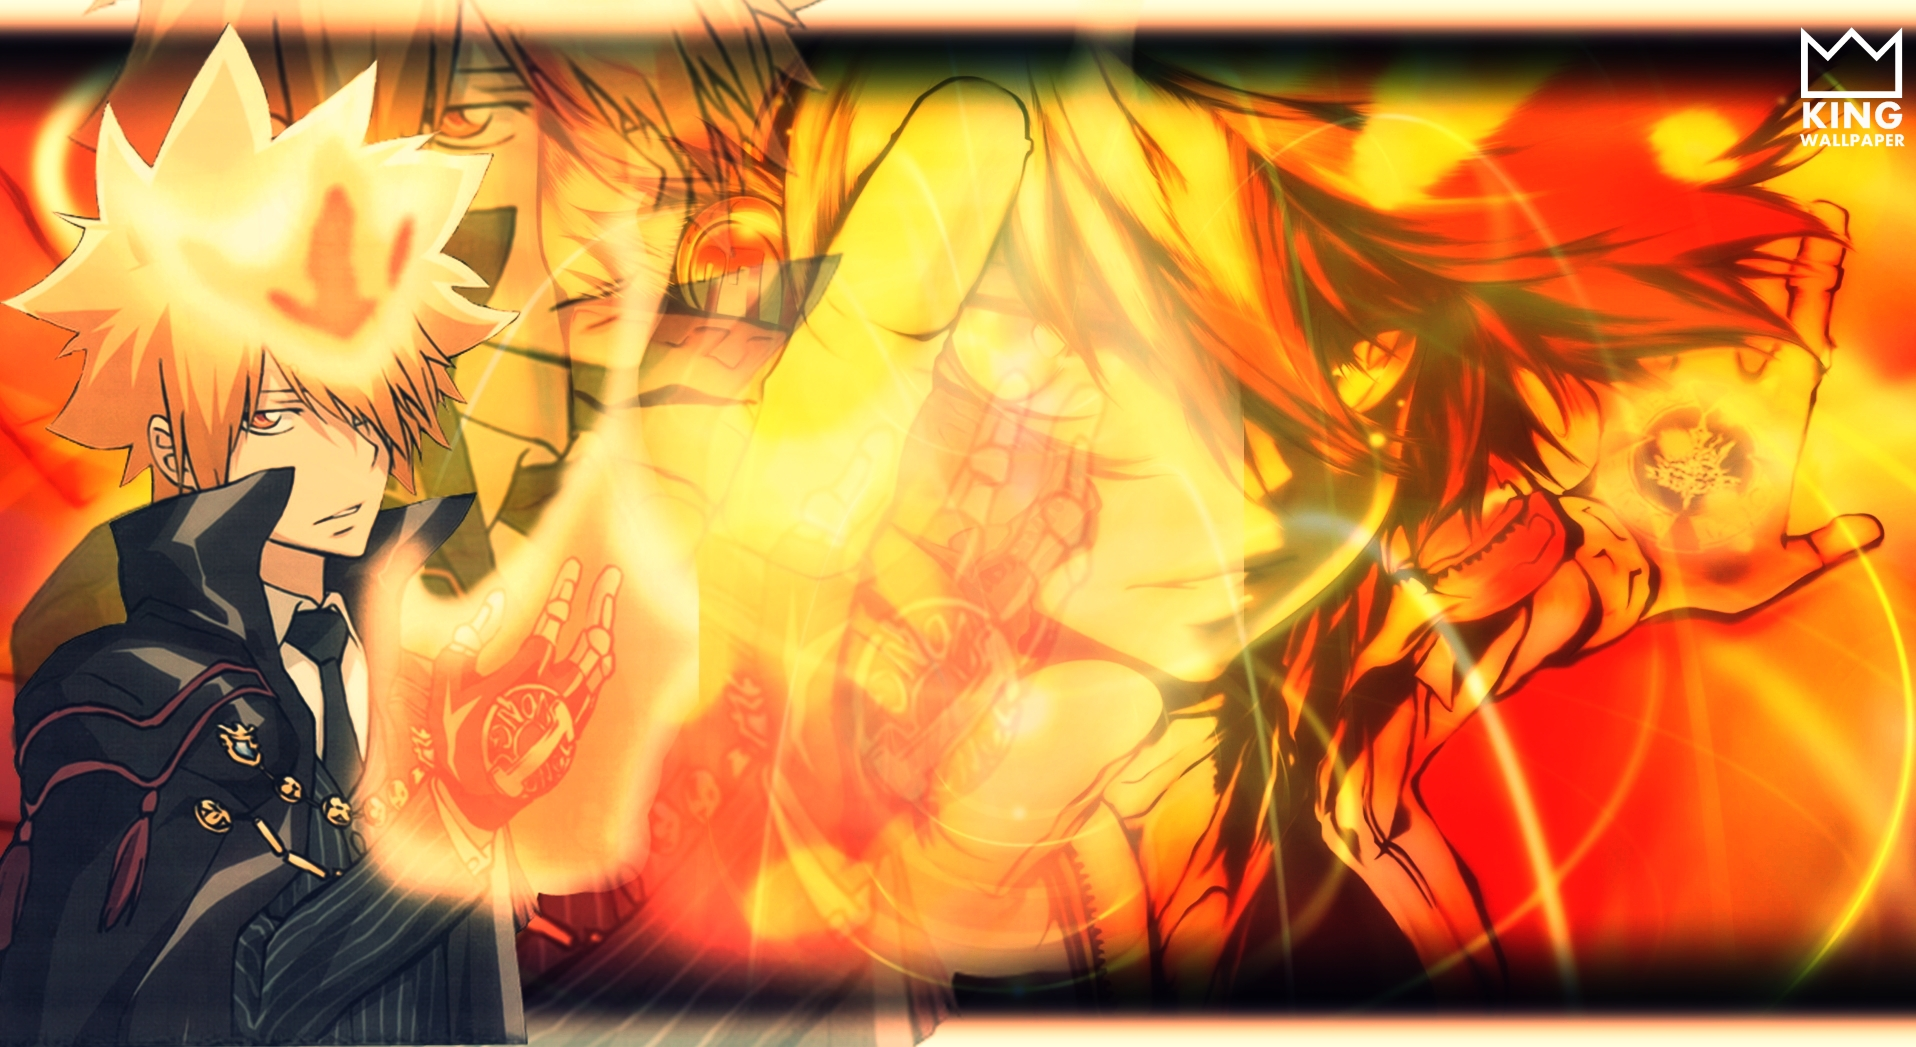 Tsuna Wallpaper Katekyo Hitman Reborn By Kingwallpaper On